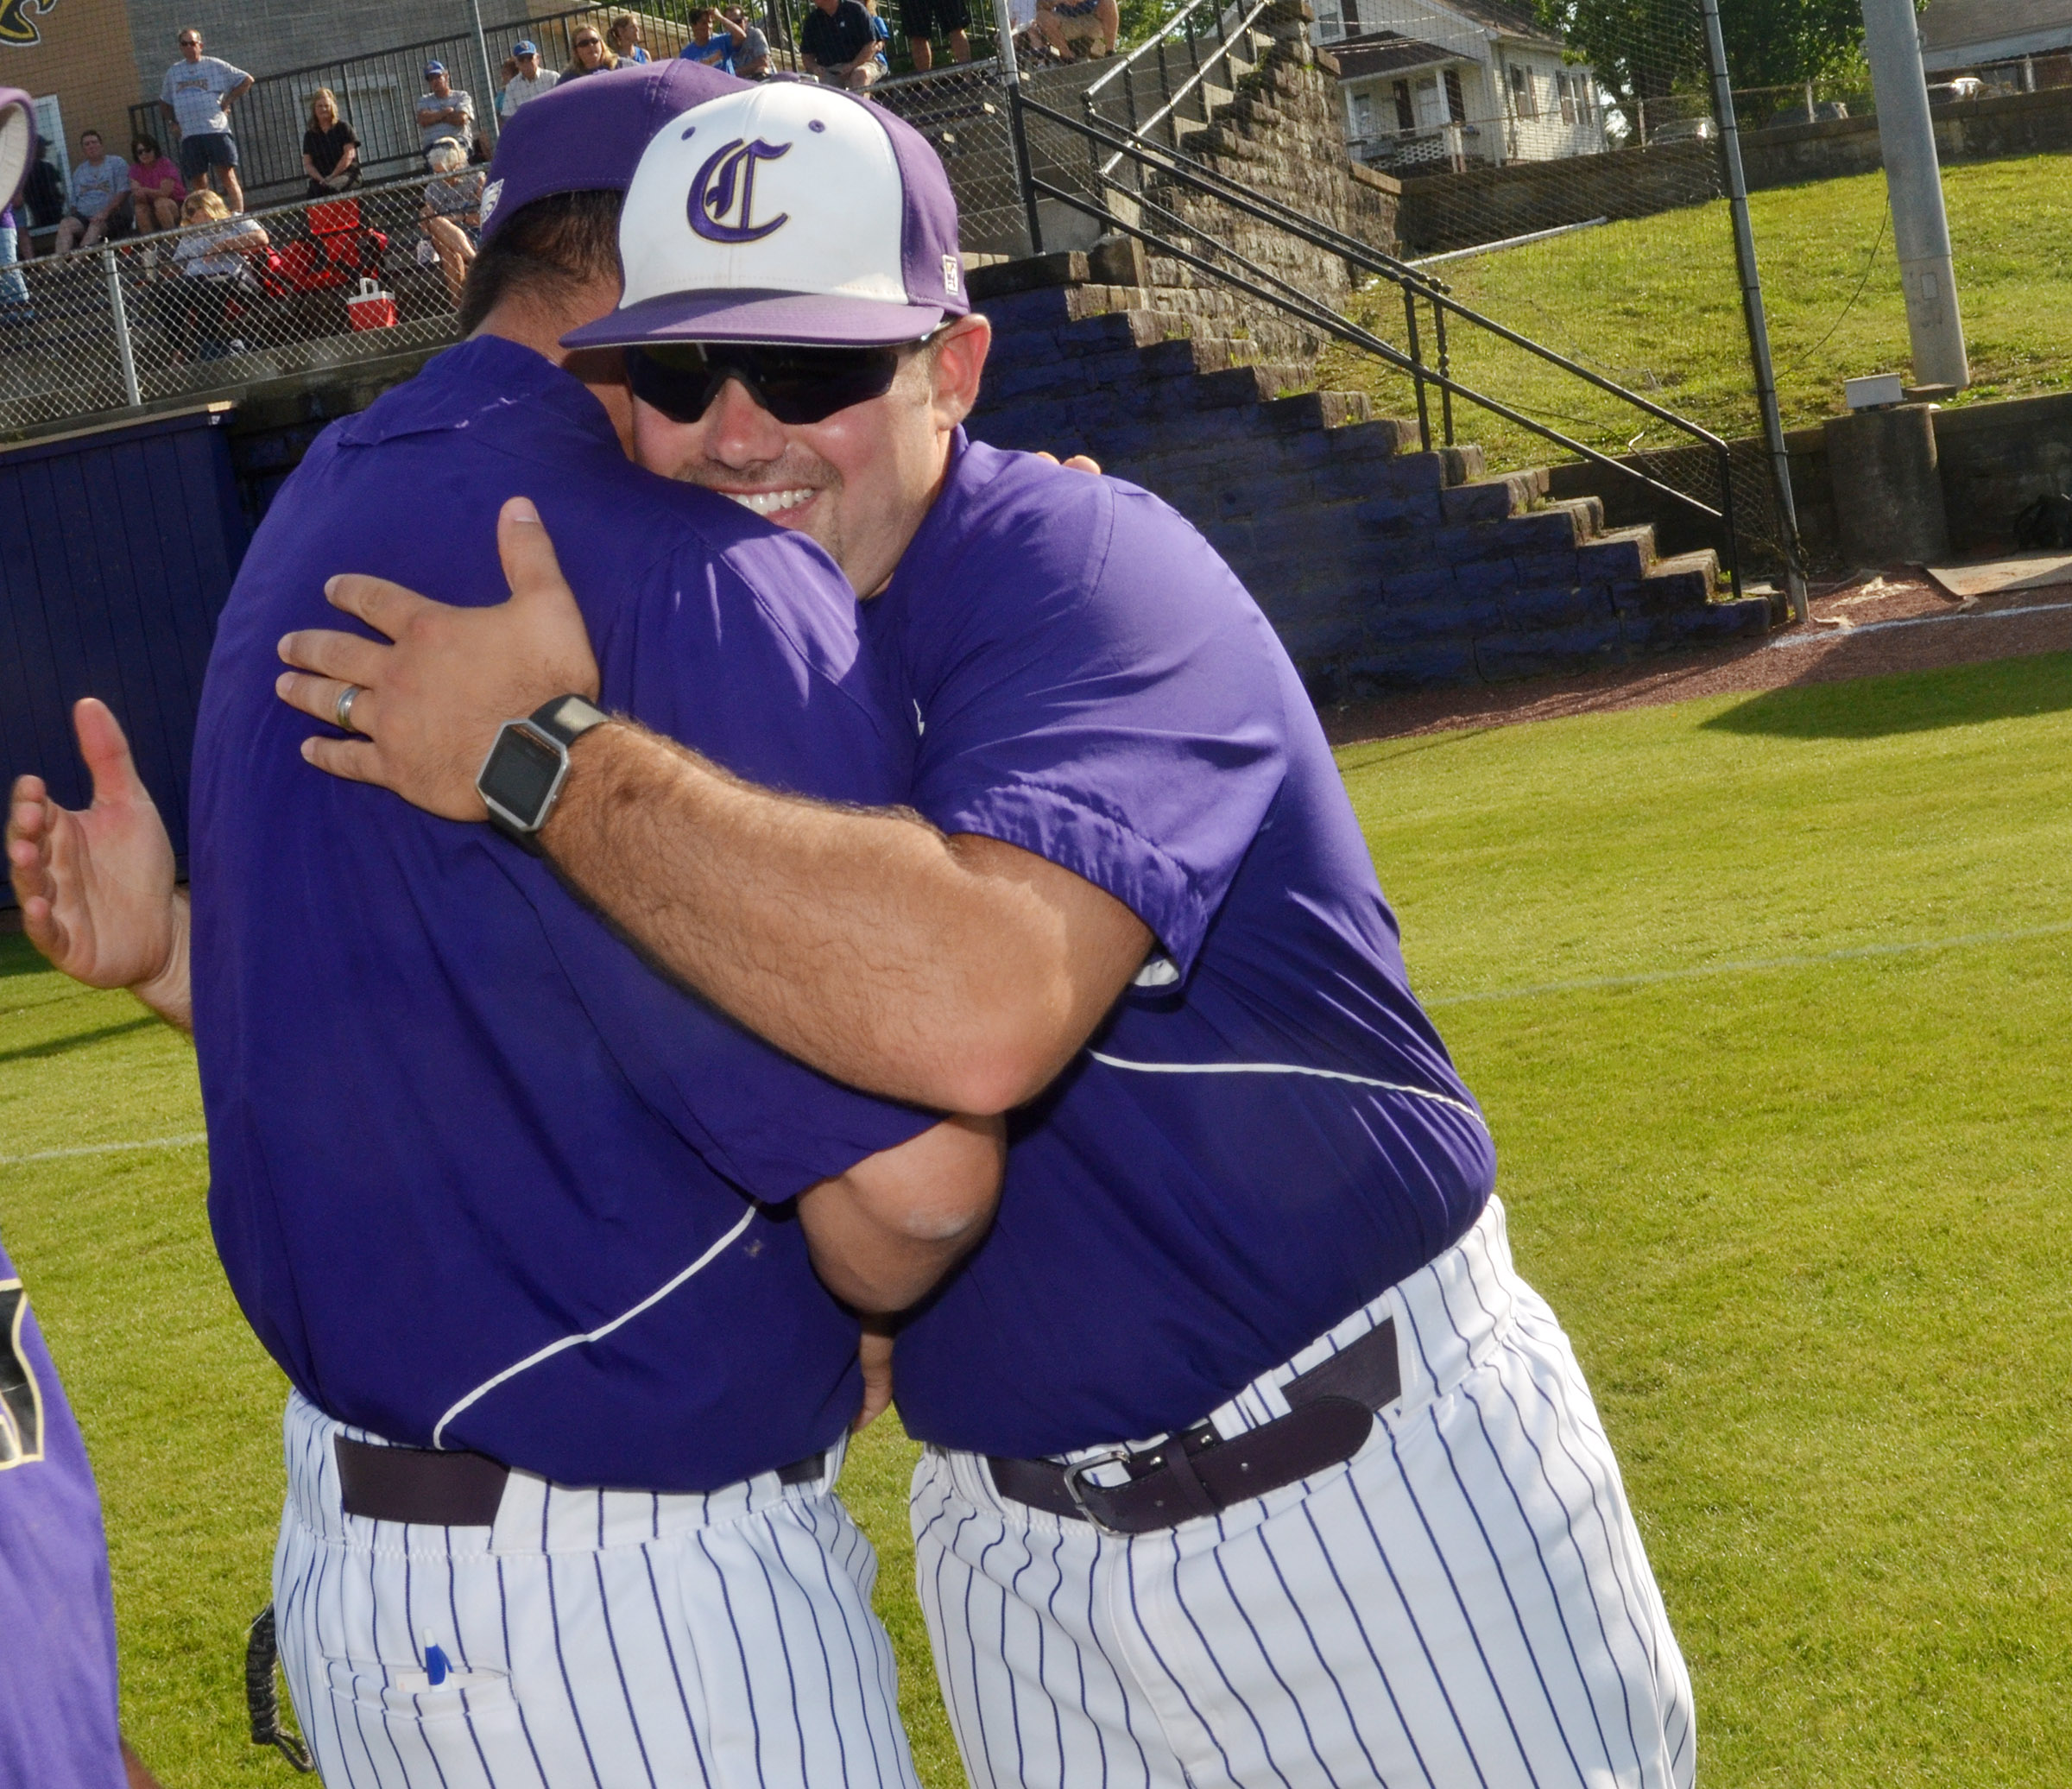 Blake Milby, a former CHS baseball player and assistant coach, has been named head coach. He succeeds Kirby Smith, who coached for 11 years and is now superintendent. Above, Milby hugs Smith after a ceremony honoring Smith for his dedication to the CHS baseball program.